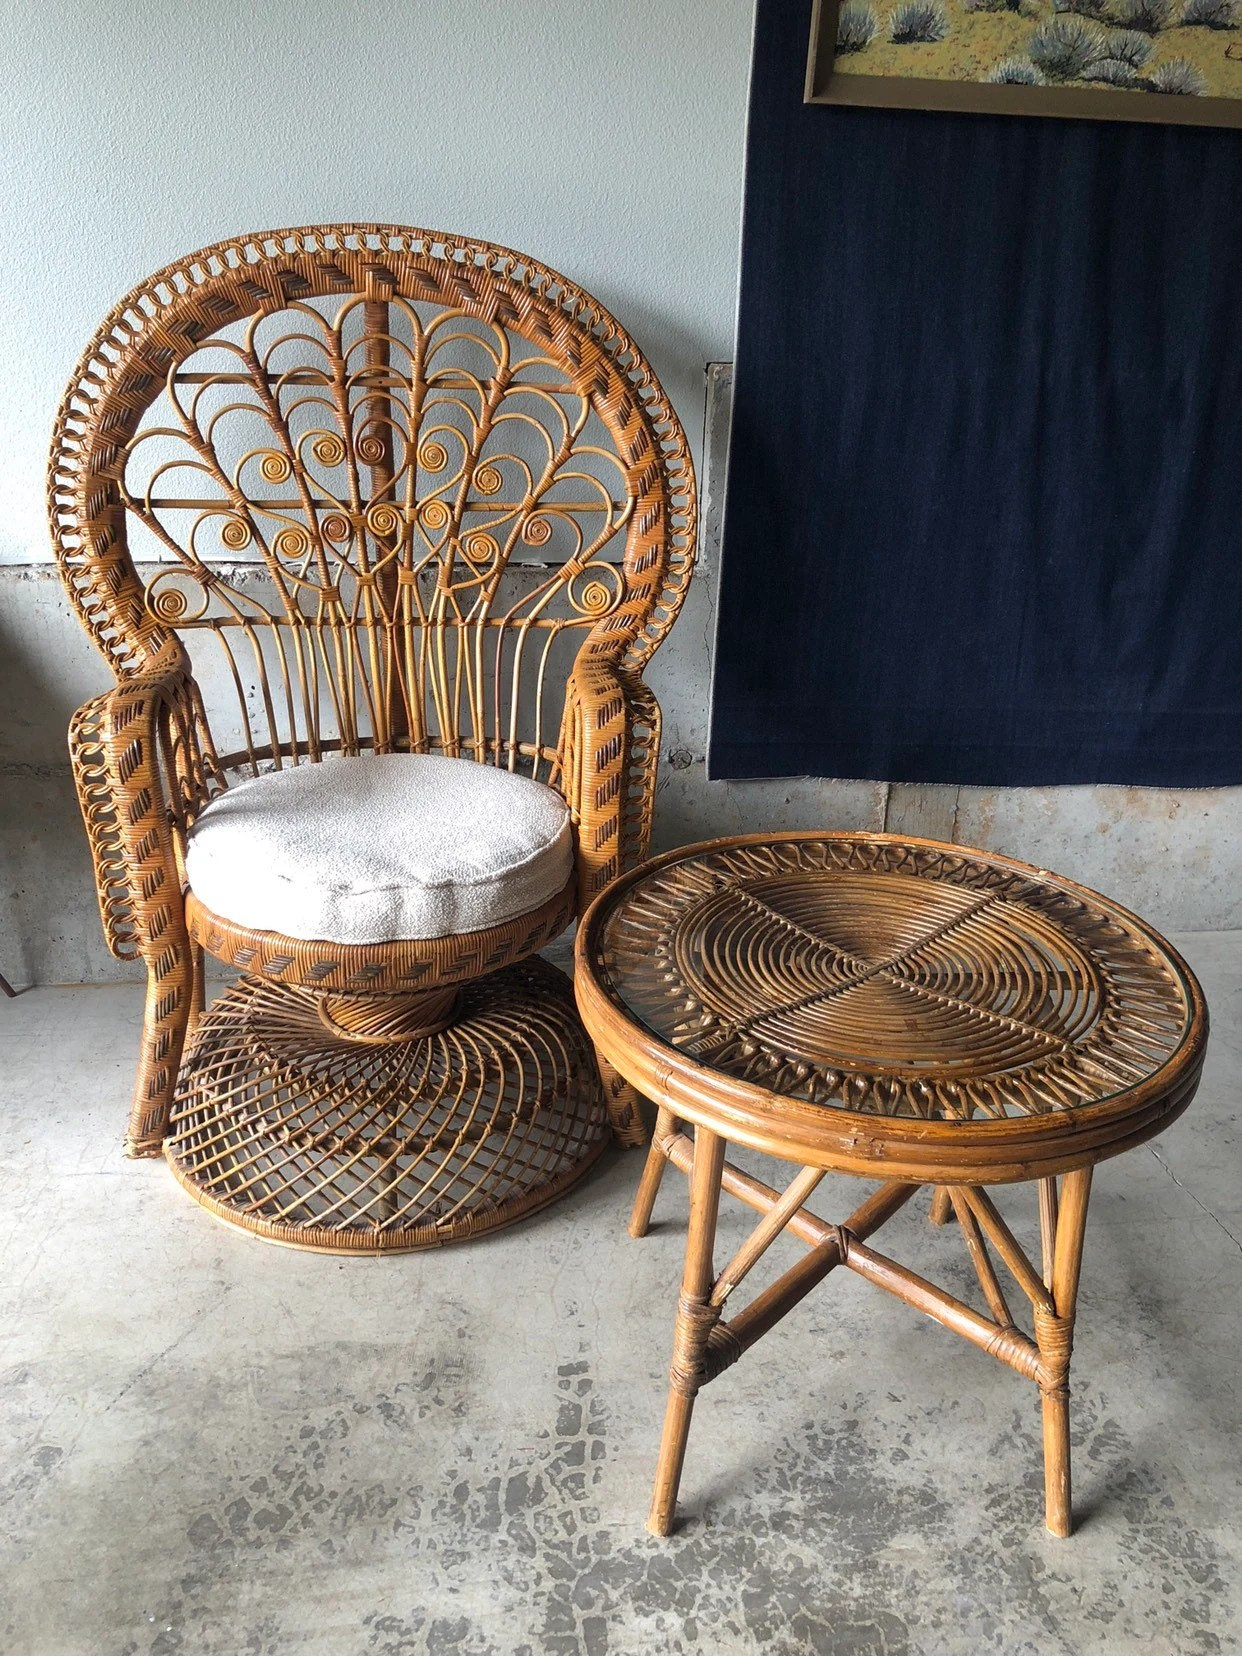 Peacock chair   Etsy Vintage Mid Century 1970s Wicker and Rattan Peacock Chair Scroll Chair and  Side Table